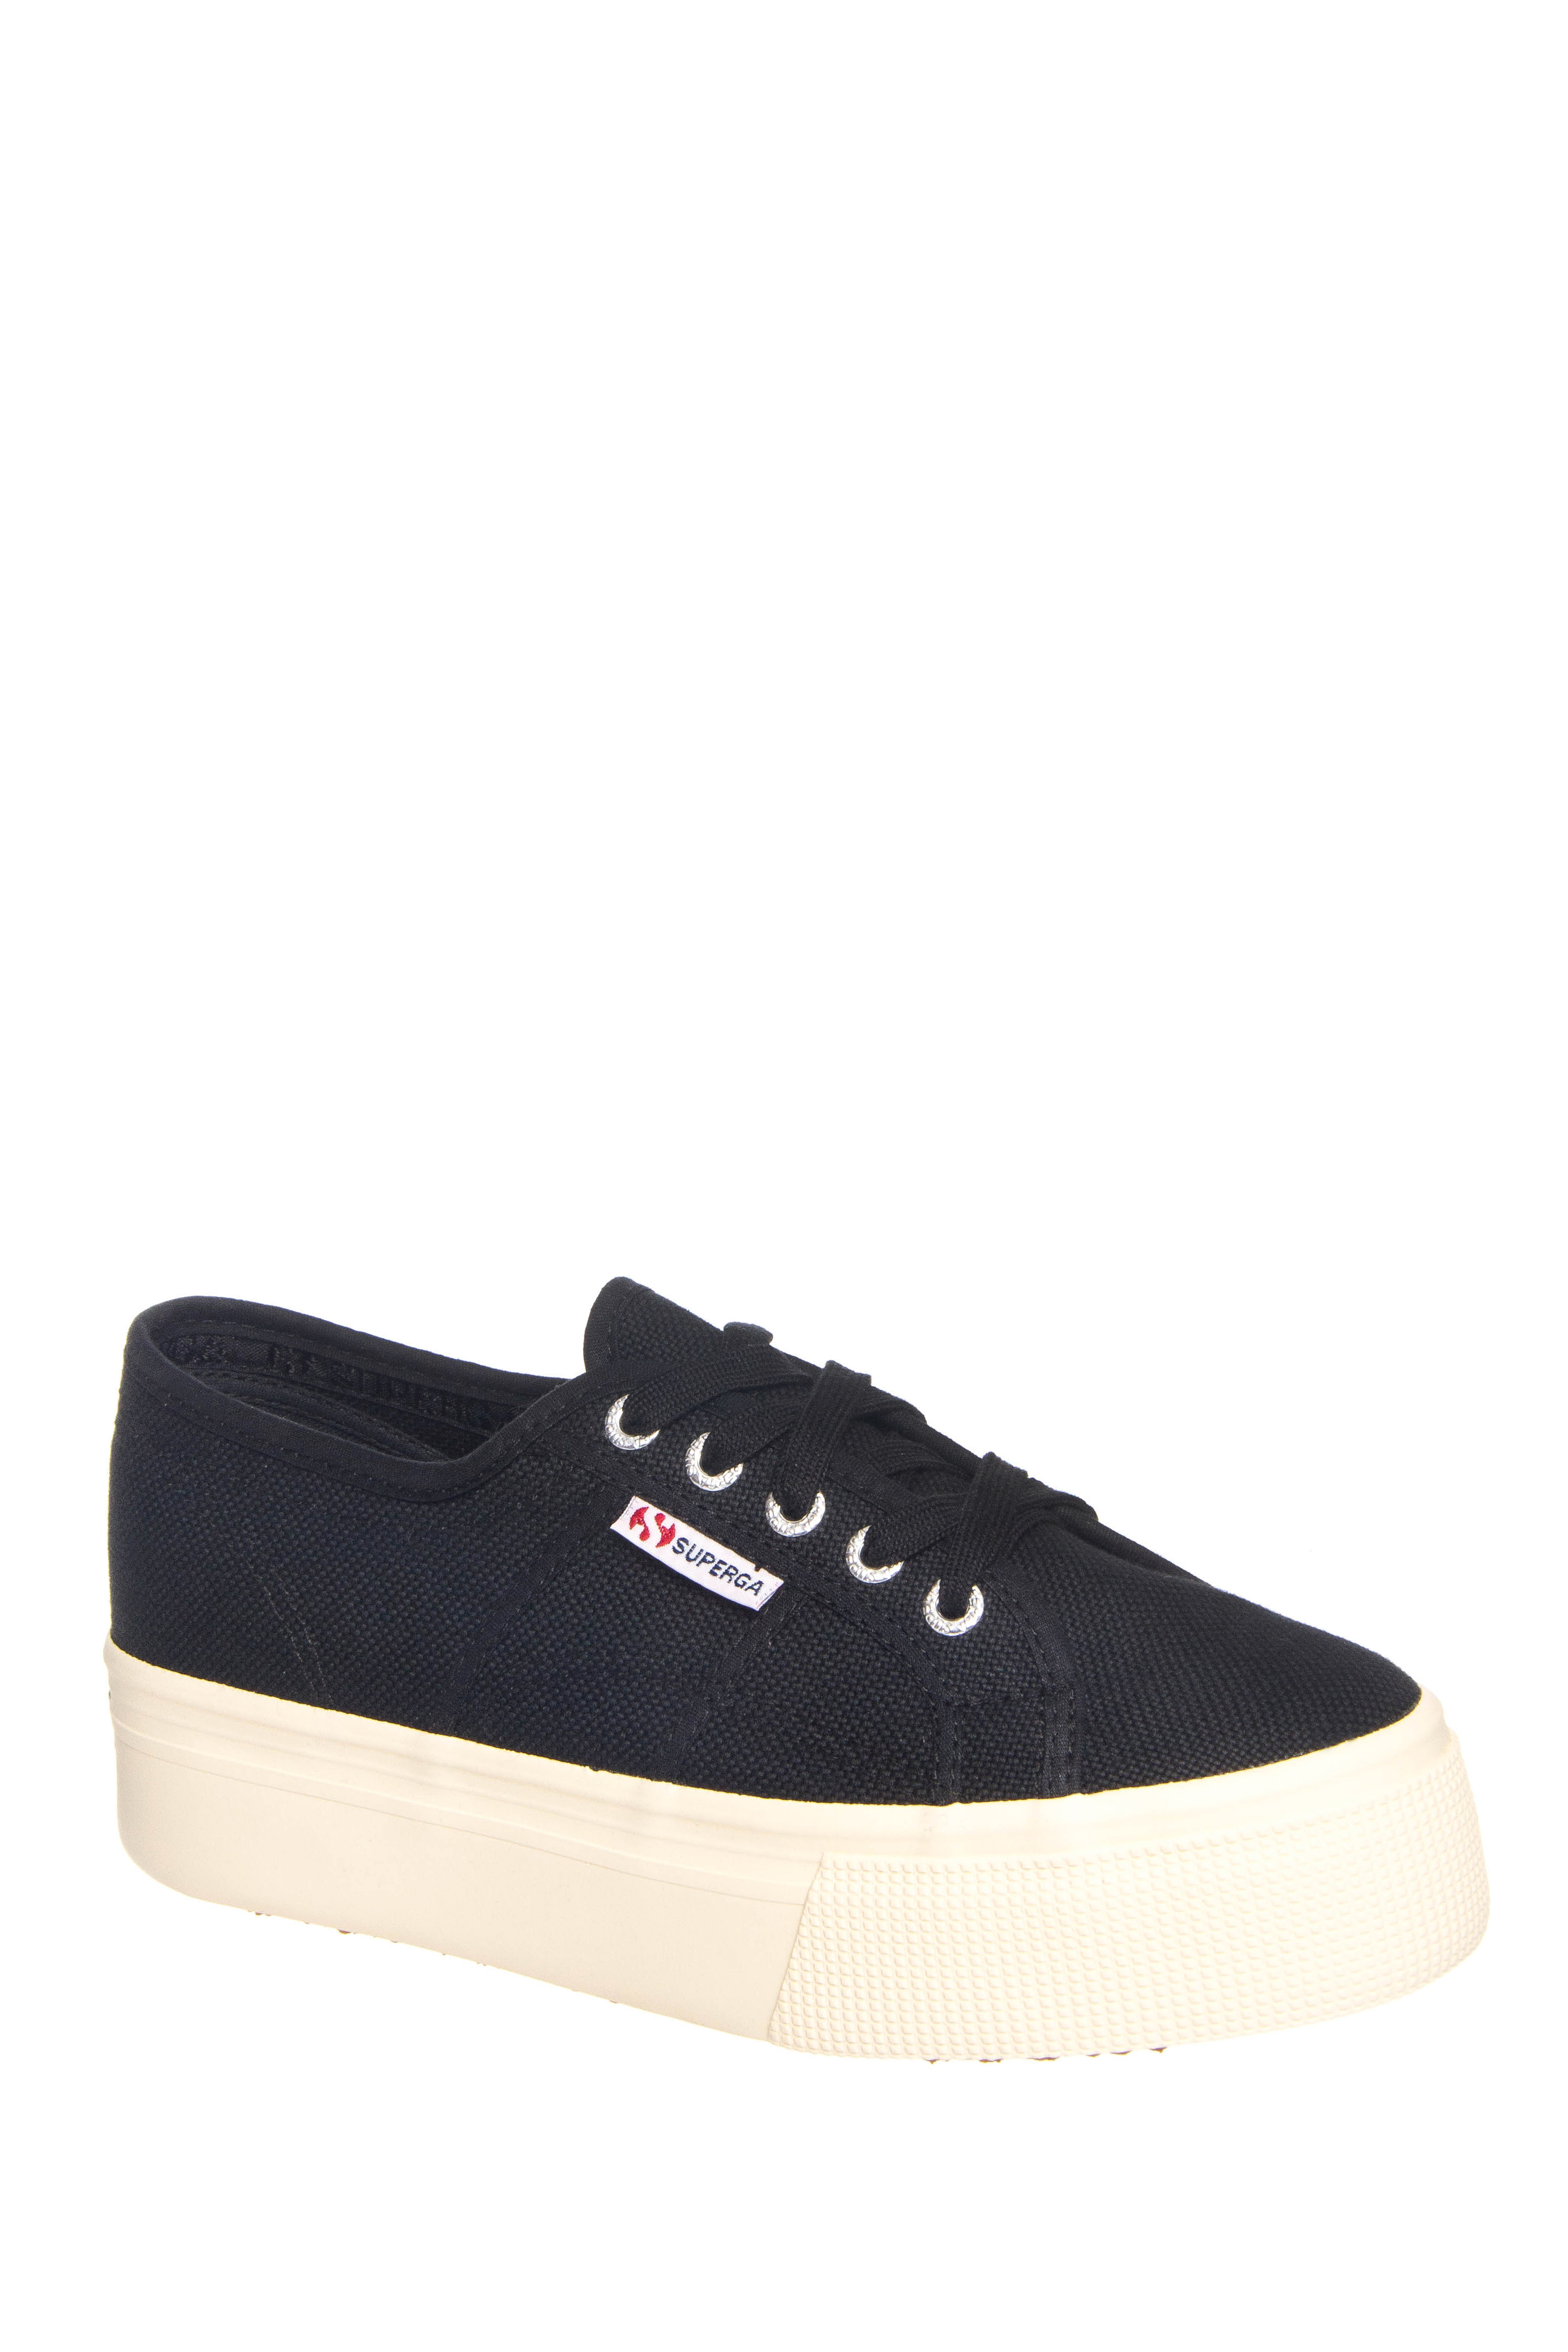 Superga 2790A Cotw Mid Platform Low Top Sneakers - Black